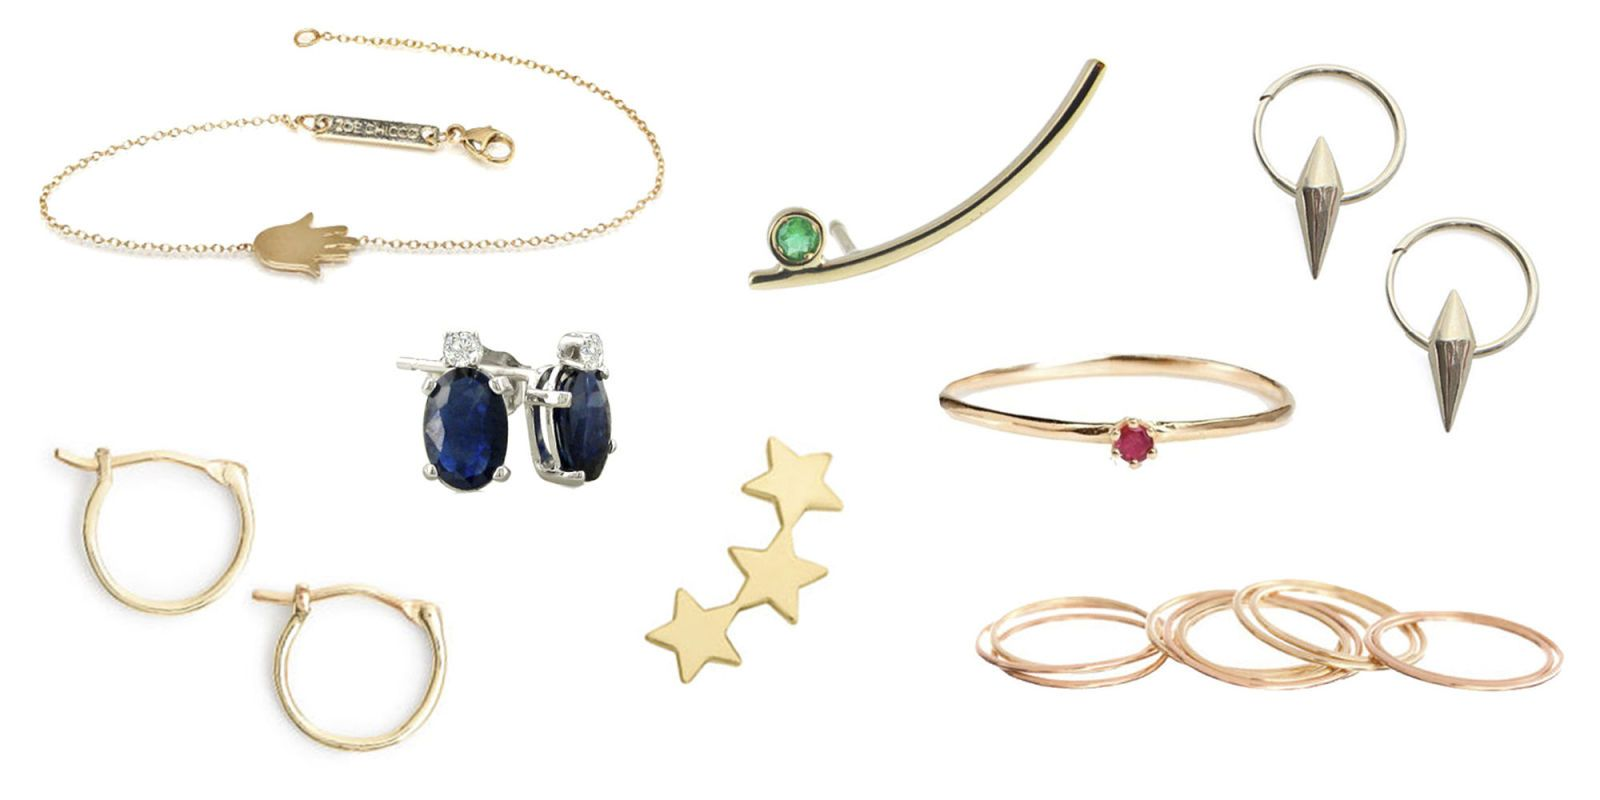 18 Pieces of Delicate Gold and Diamond Jewelry For Under 250